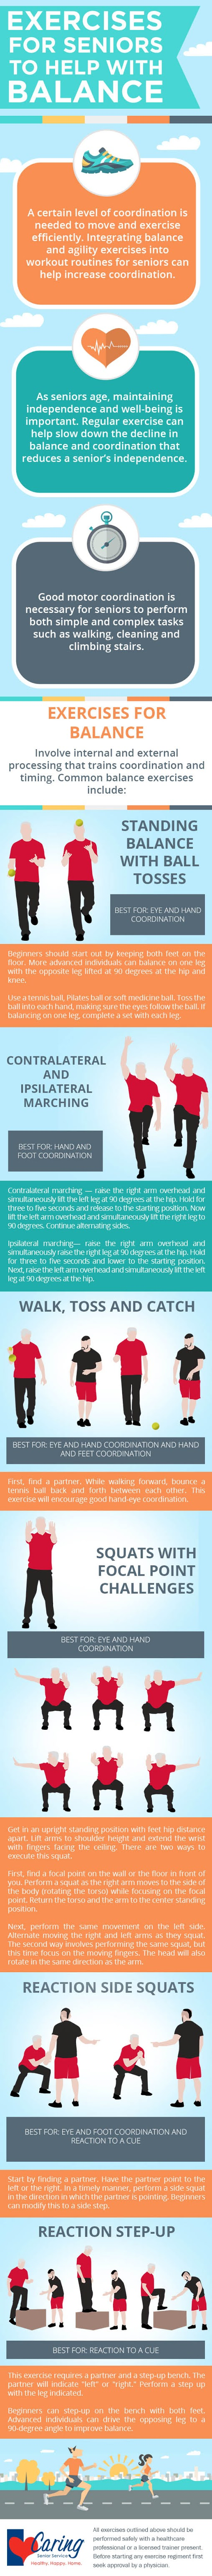 Exercises for Seniors to Help with Balance #infographic #Health & Fitness #Exercise #Exercises for Seniors